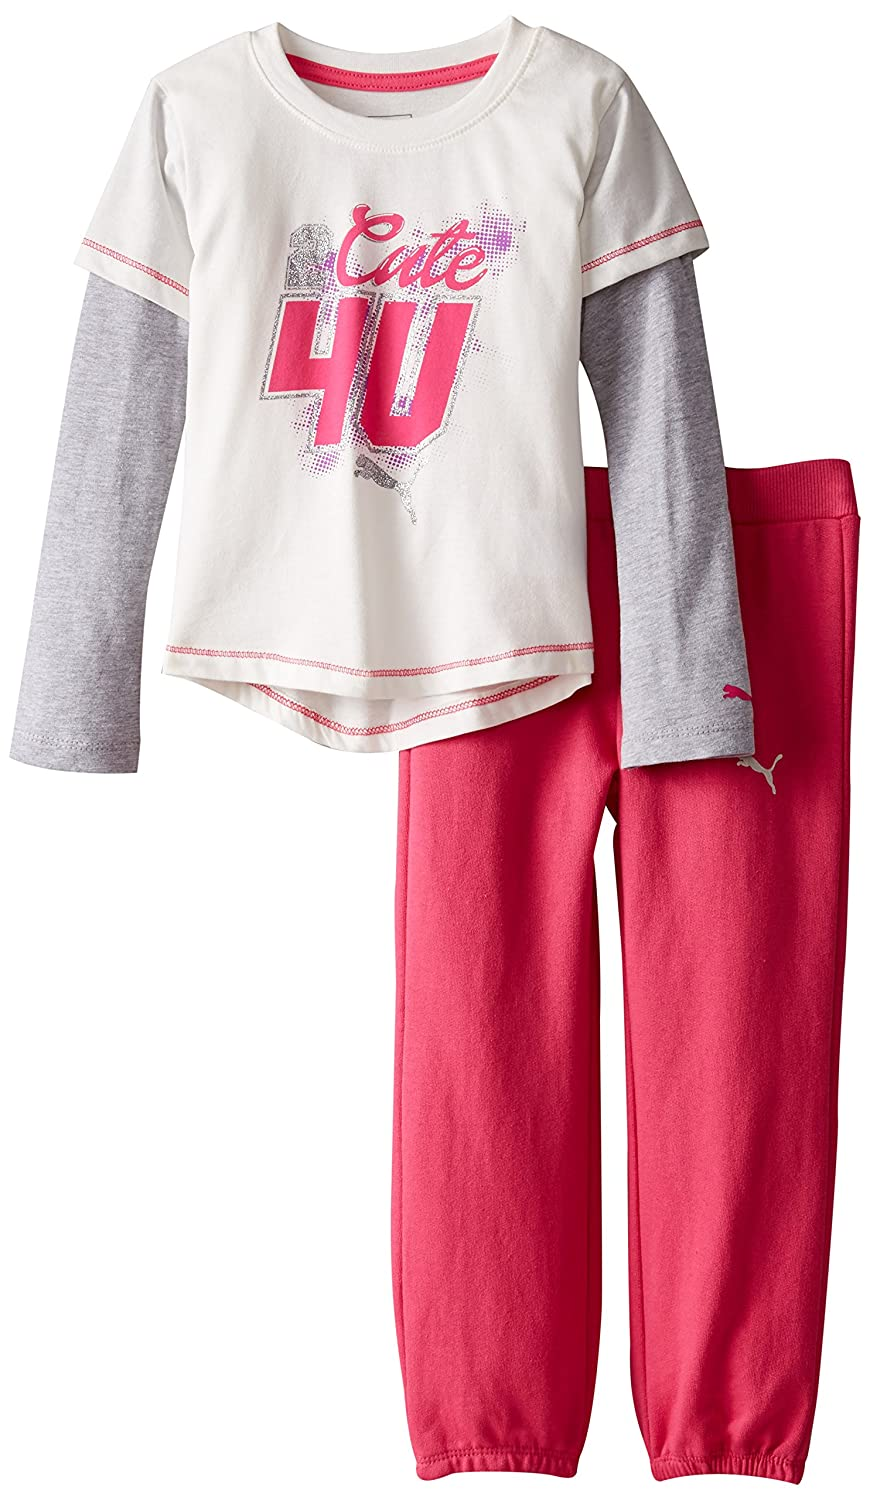 PUMA Girls' Two Piece Twofer Tee and Pant Set PUMA Little Girls 1155119